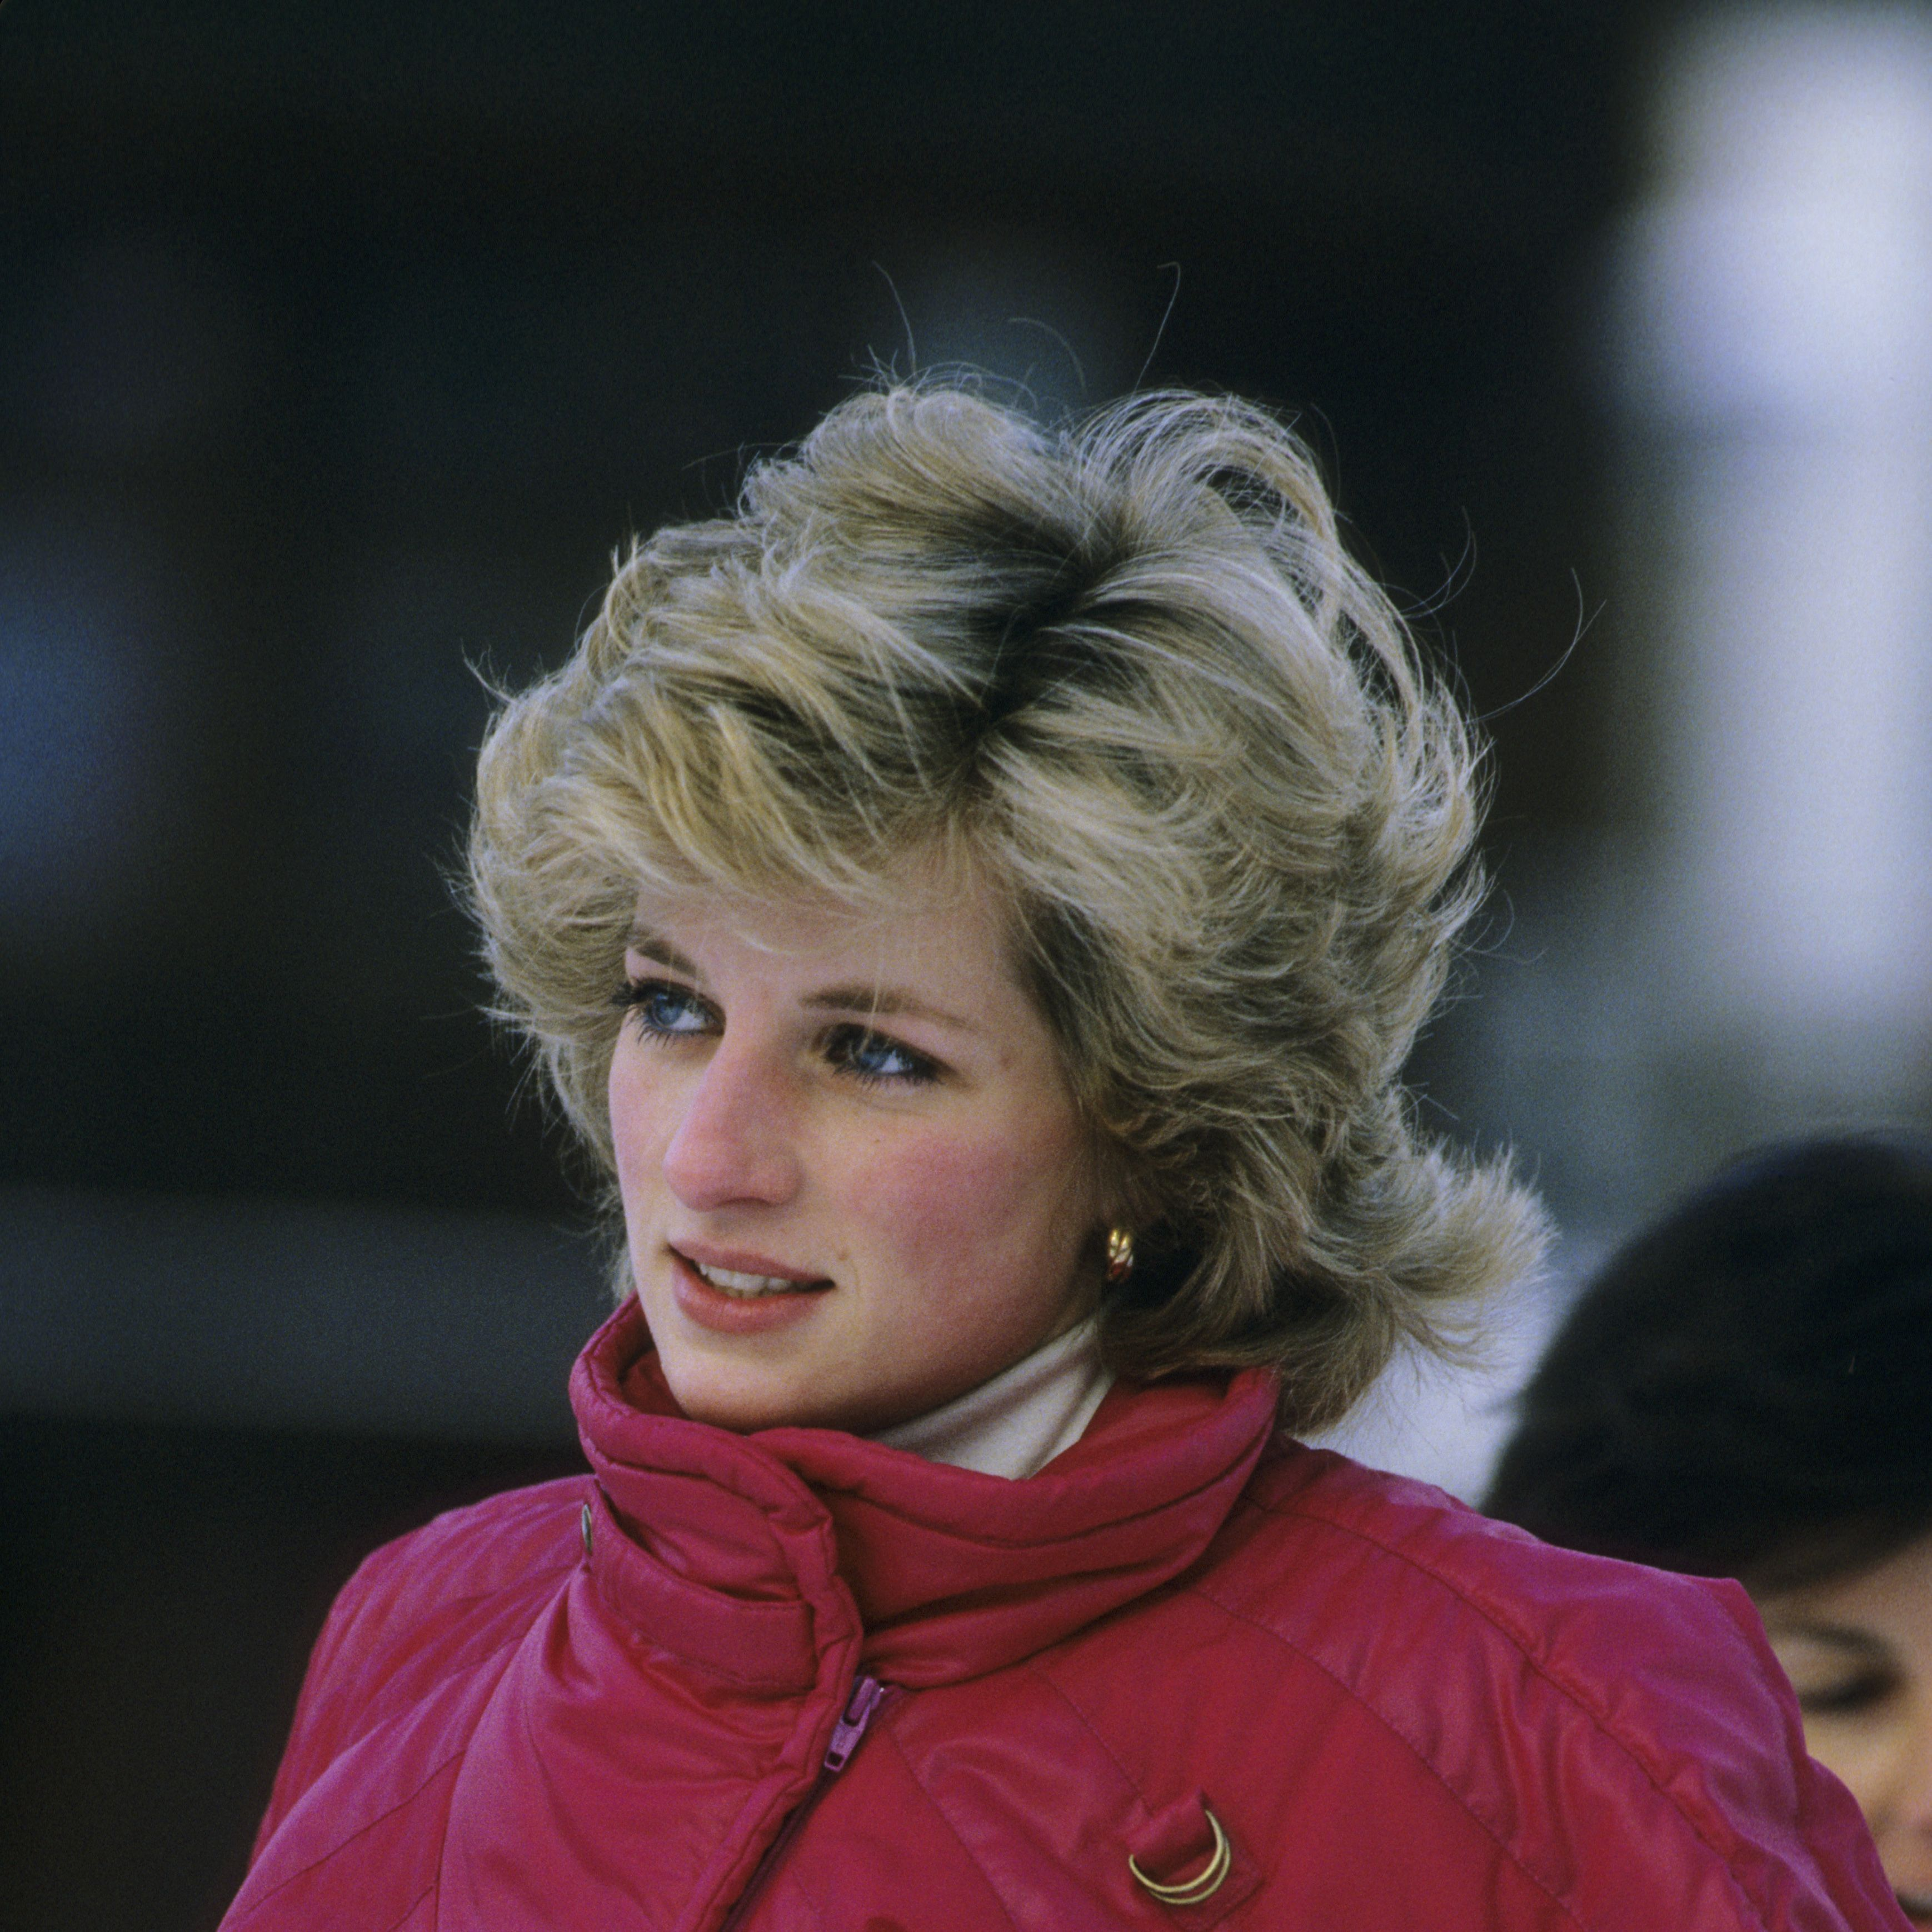 Princess Diana (1961 - 1997) during a skiing holiday in Liechtenstein on January 24, 1985  (Photo by Georges DeKeerle/Getty Images)